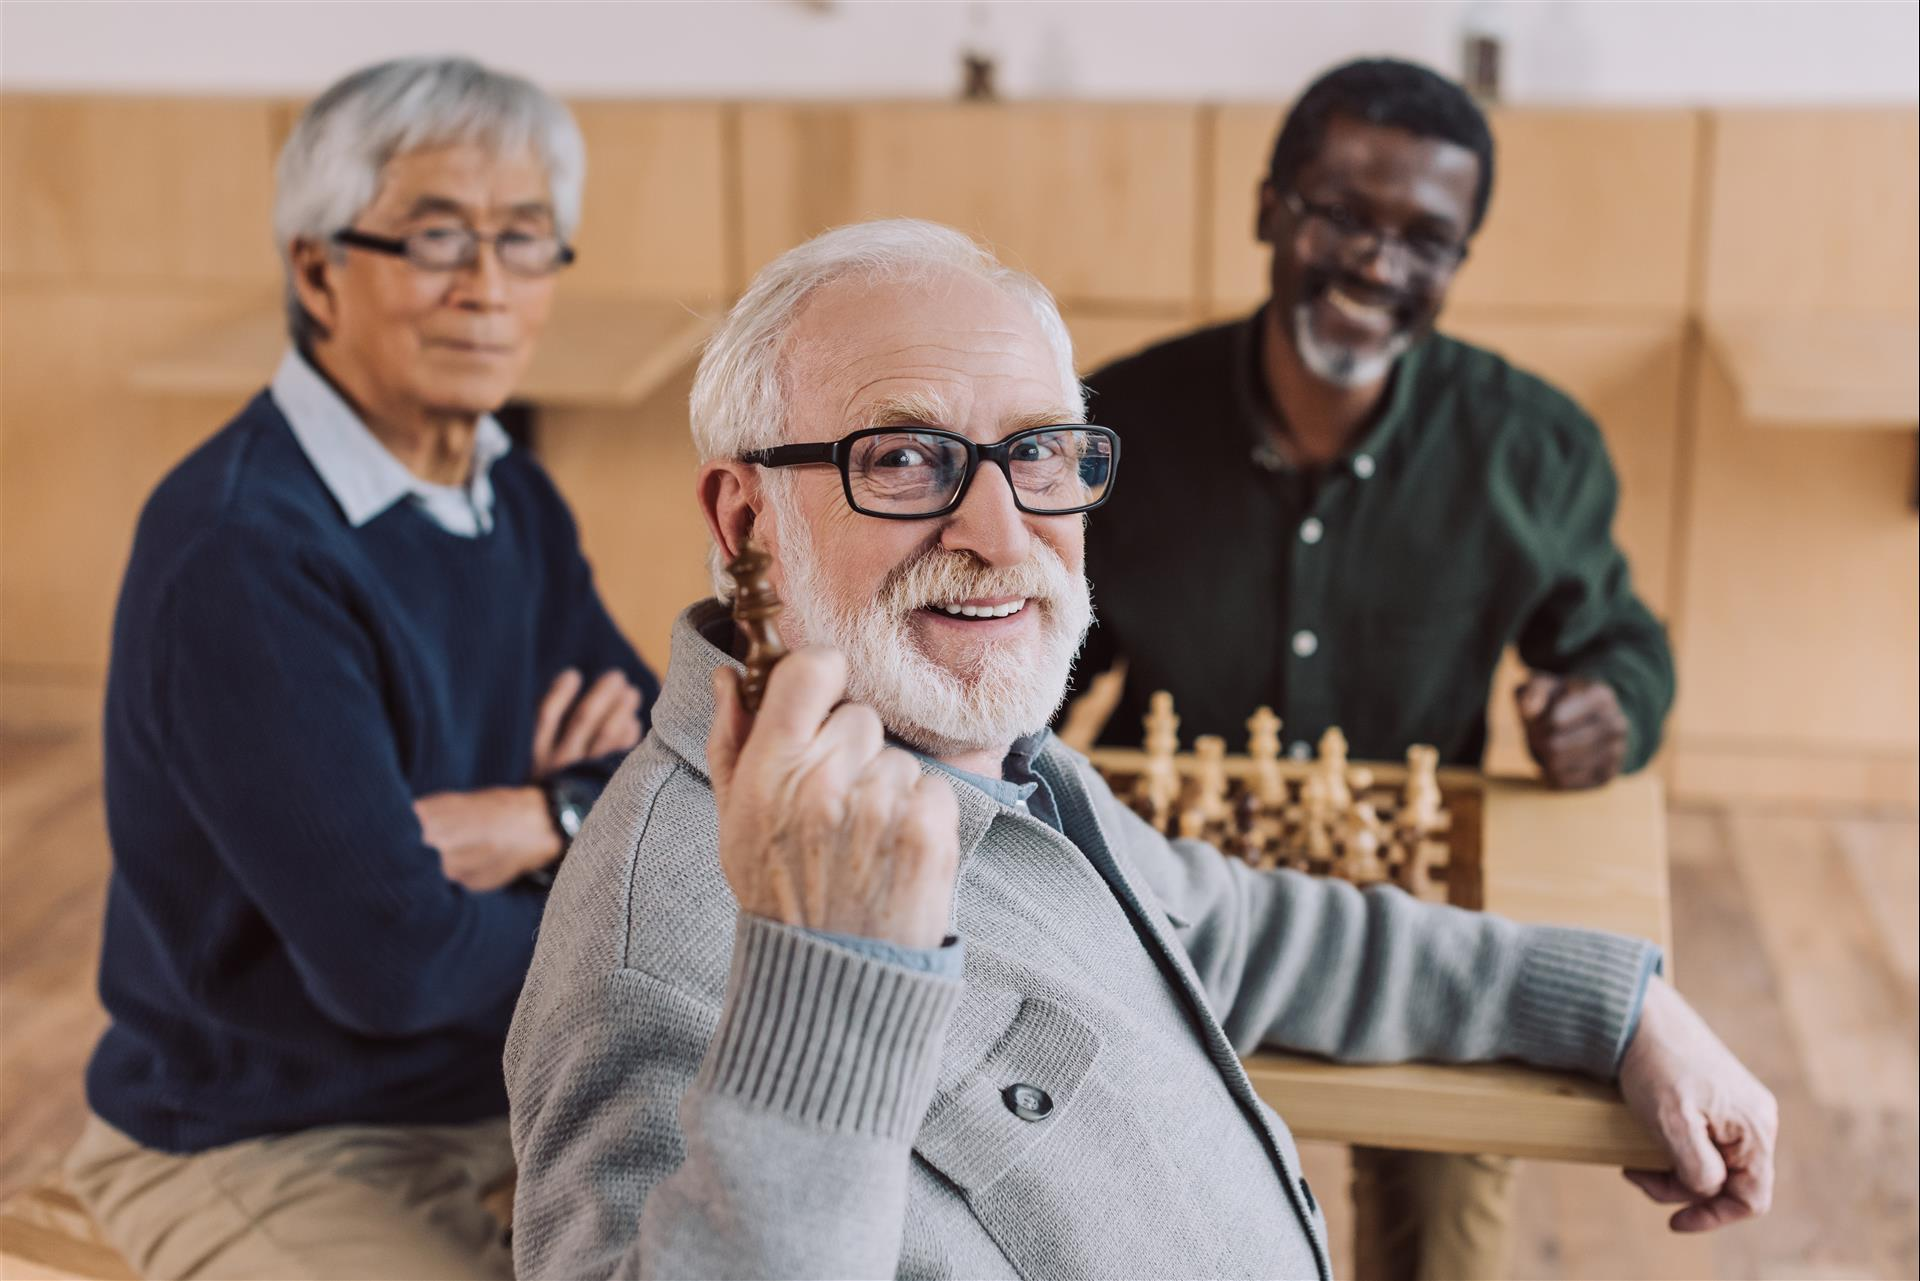 9 Board Games to Try in Your Assisted Living Community